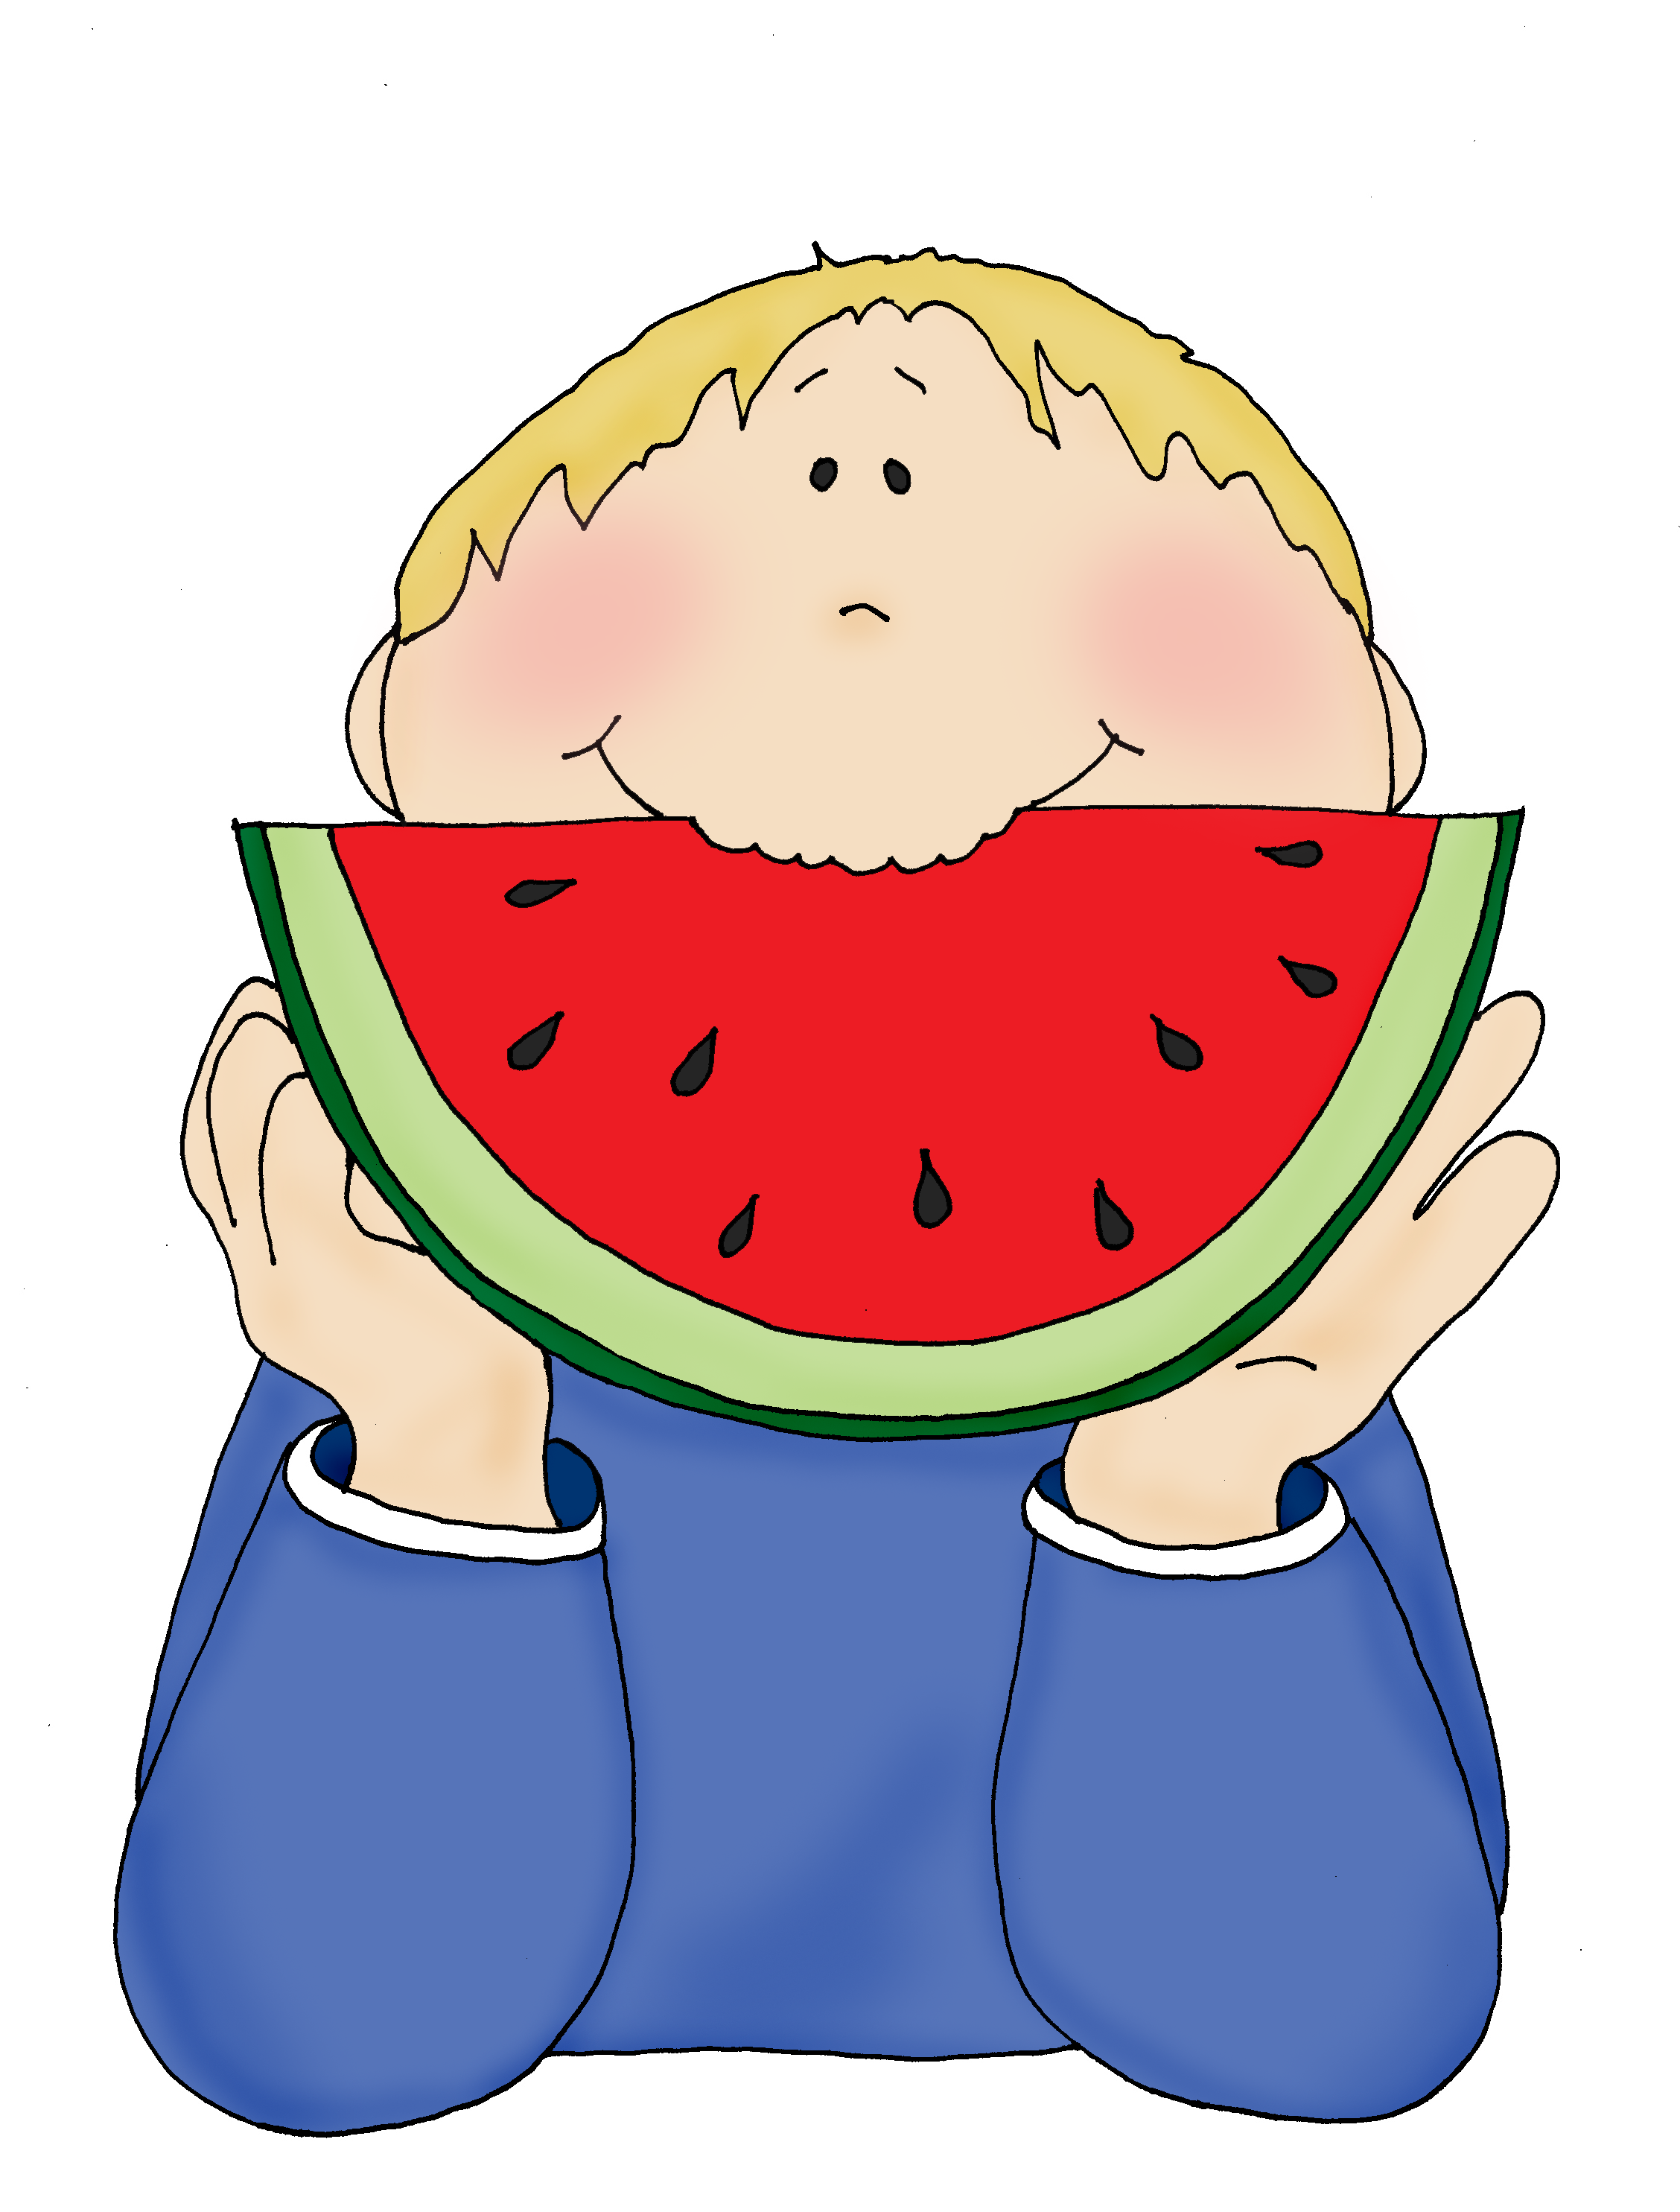 Eating watermelon clipart image black and white Pin by Mary Ellen Smith on Dearie Dolls Digi Stamps   Digi stamps ... image black and white